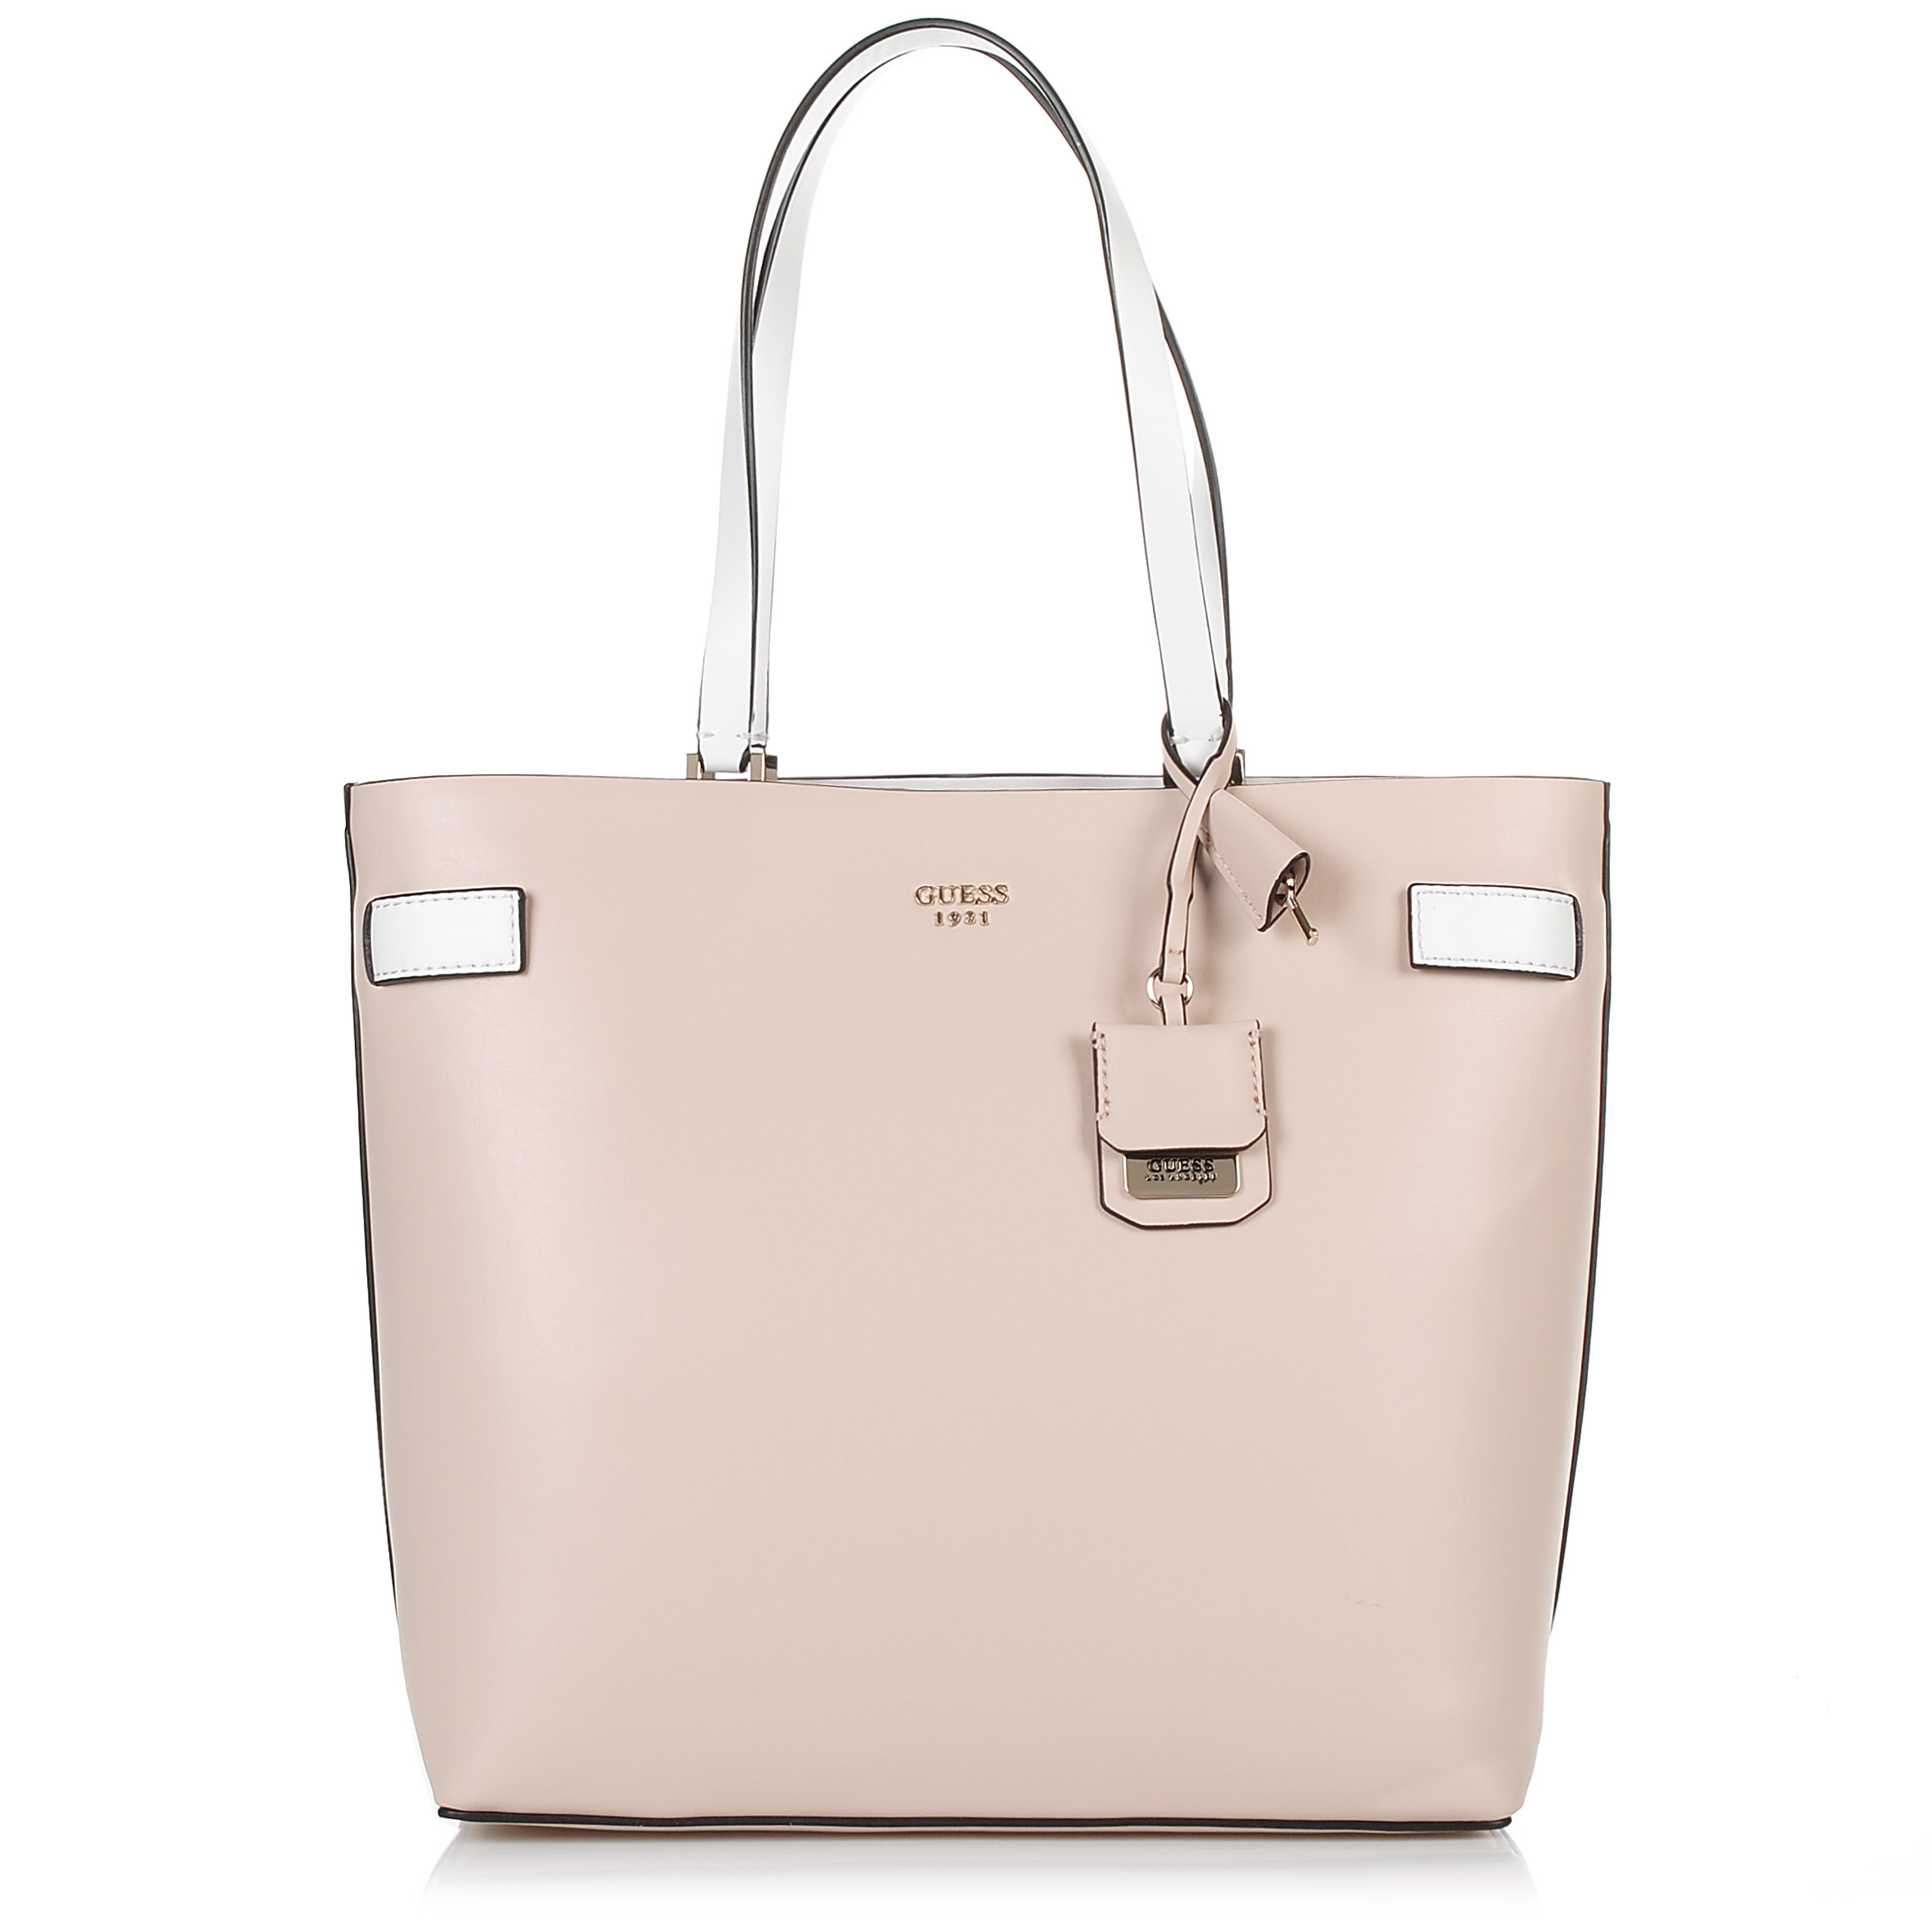 Tote Τσάντα Guess Cate HWVG6216230 γυναικα   γυναικεία τσάντα